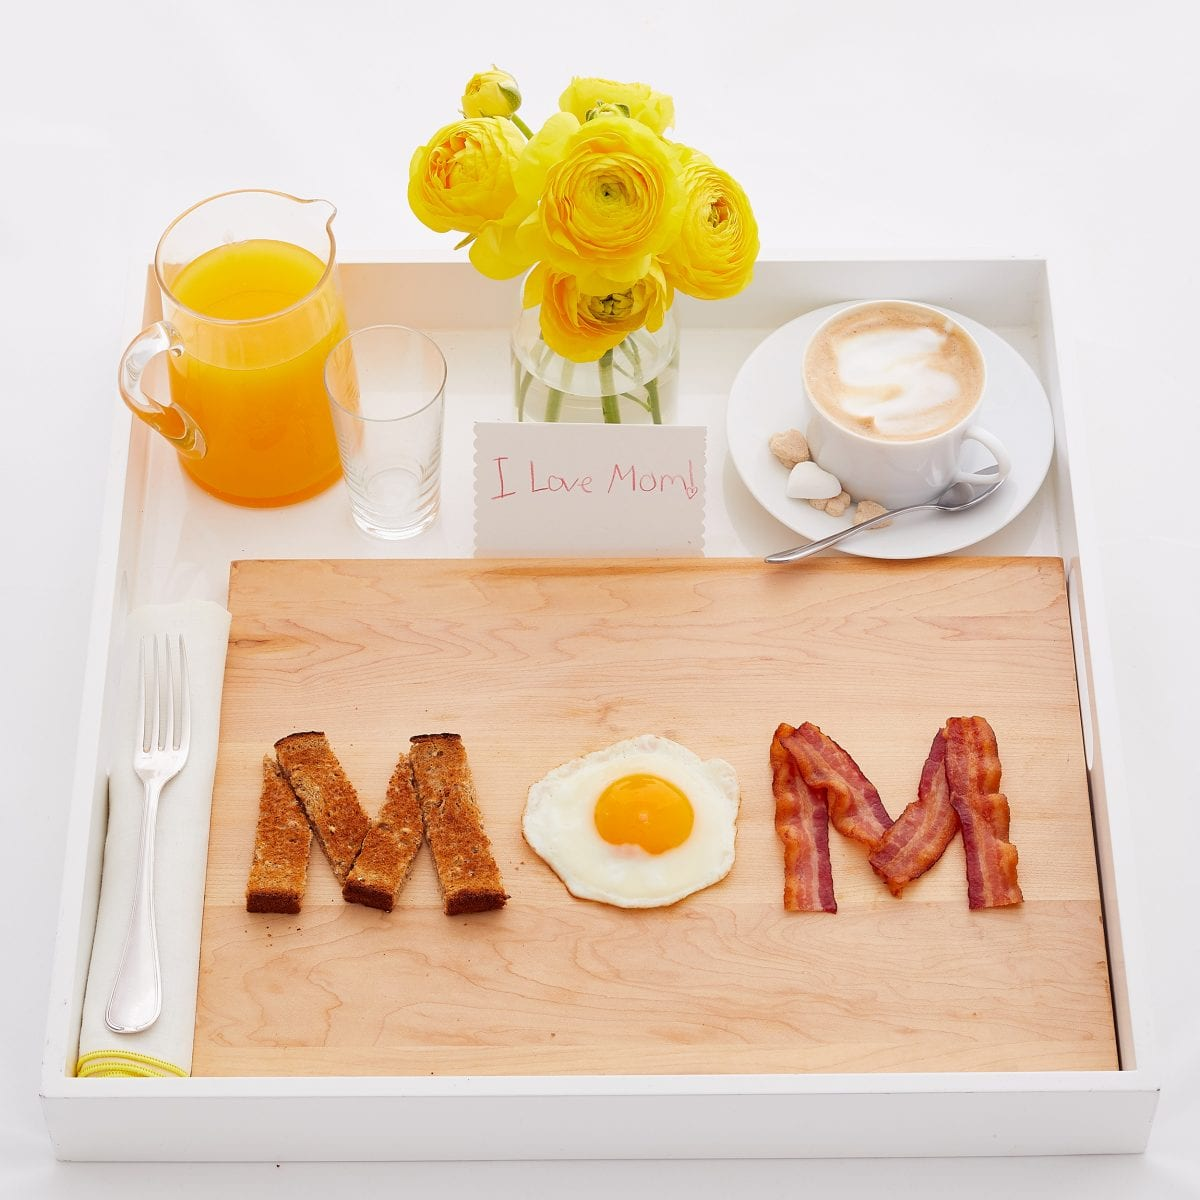 wow your mom mother s day breakfast darcy miller designs. Black Bedroom Furniture Sets. Home Design Ideas